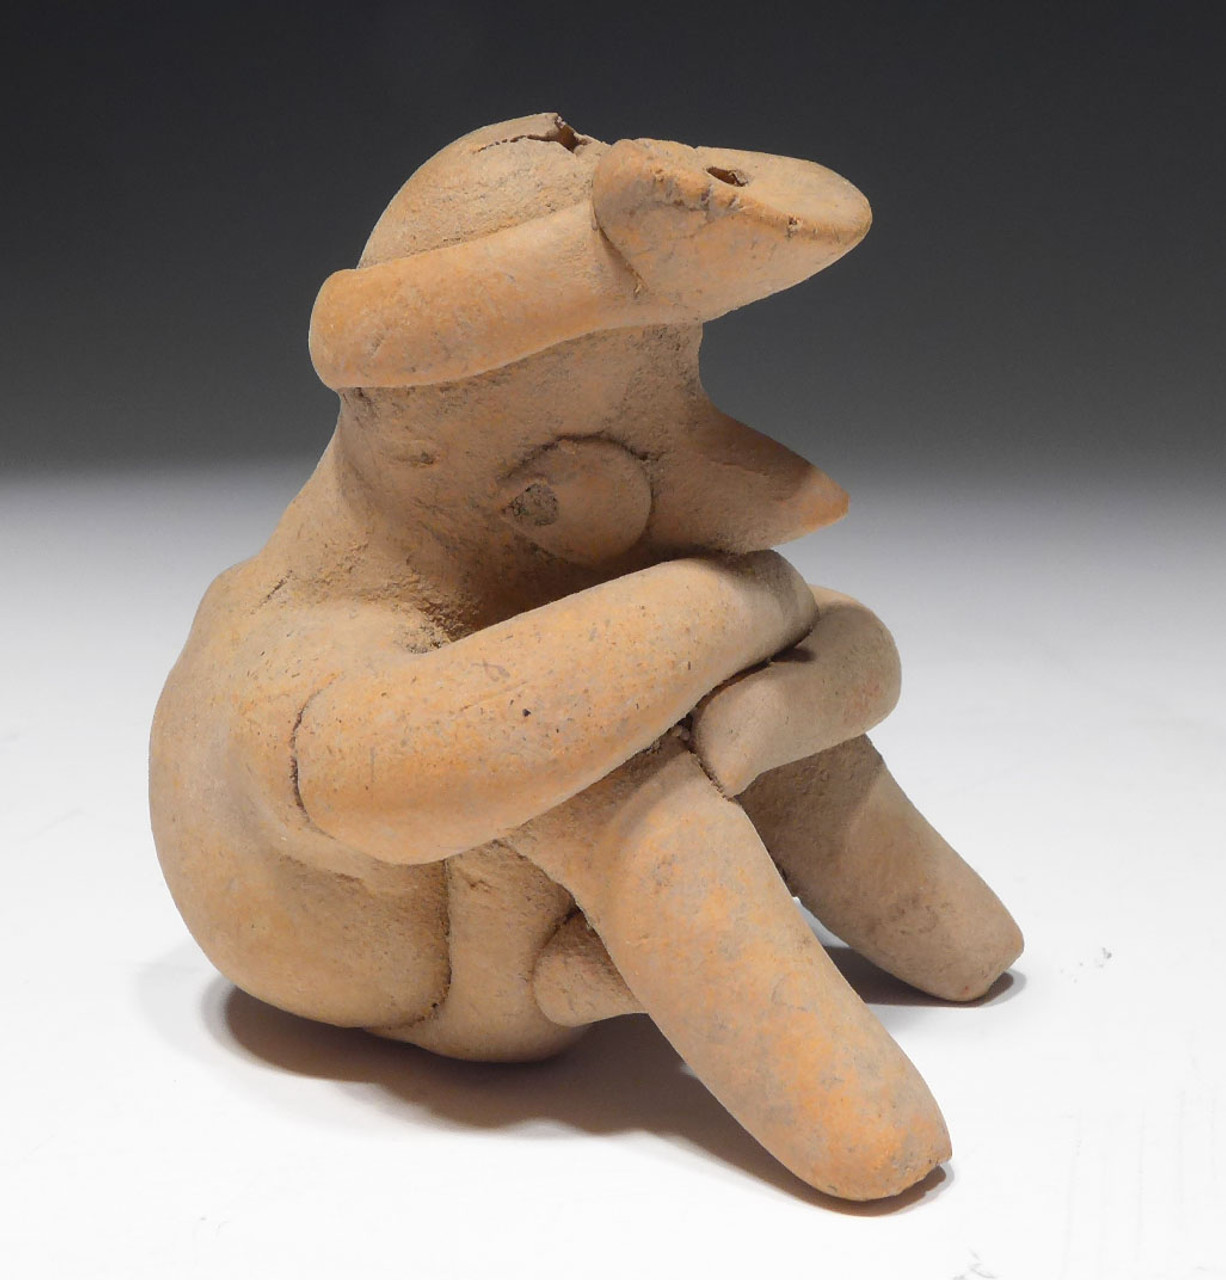 RARE INTACT SEATED WARRIOR PRE-COLUMBIAN CERAMIC FUNCTIONAL WHISTLE FROM THE HEFLIN COLLECTION * PC272